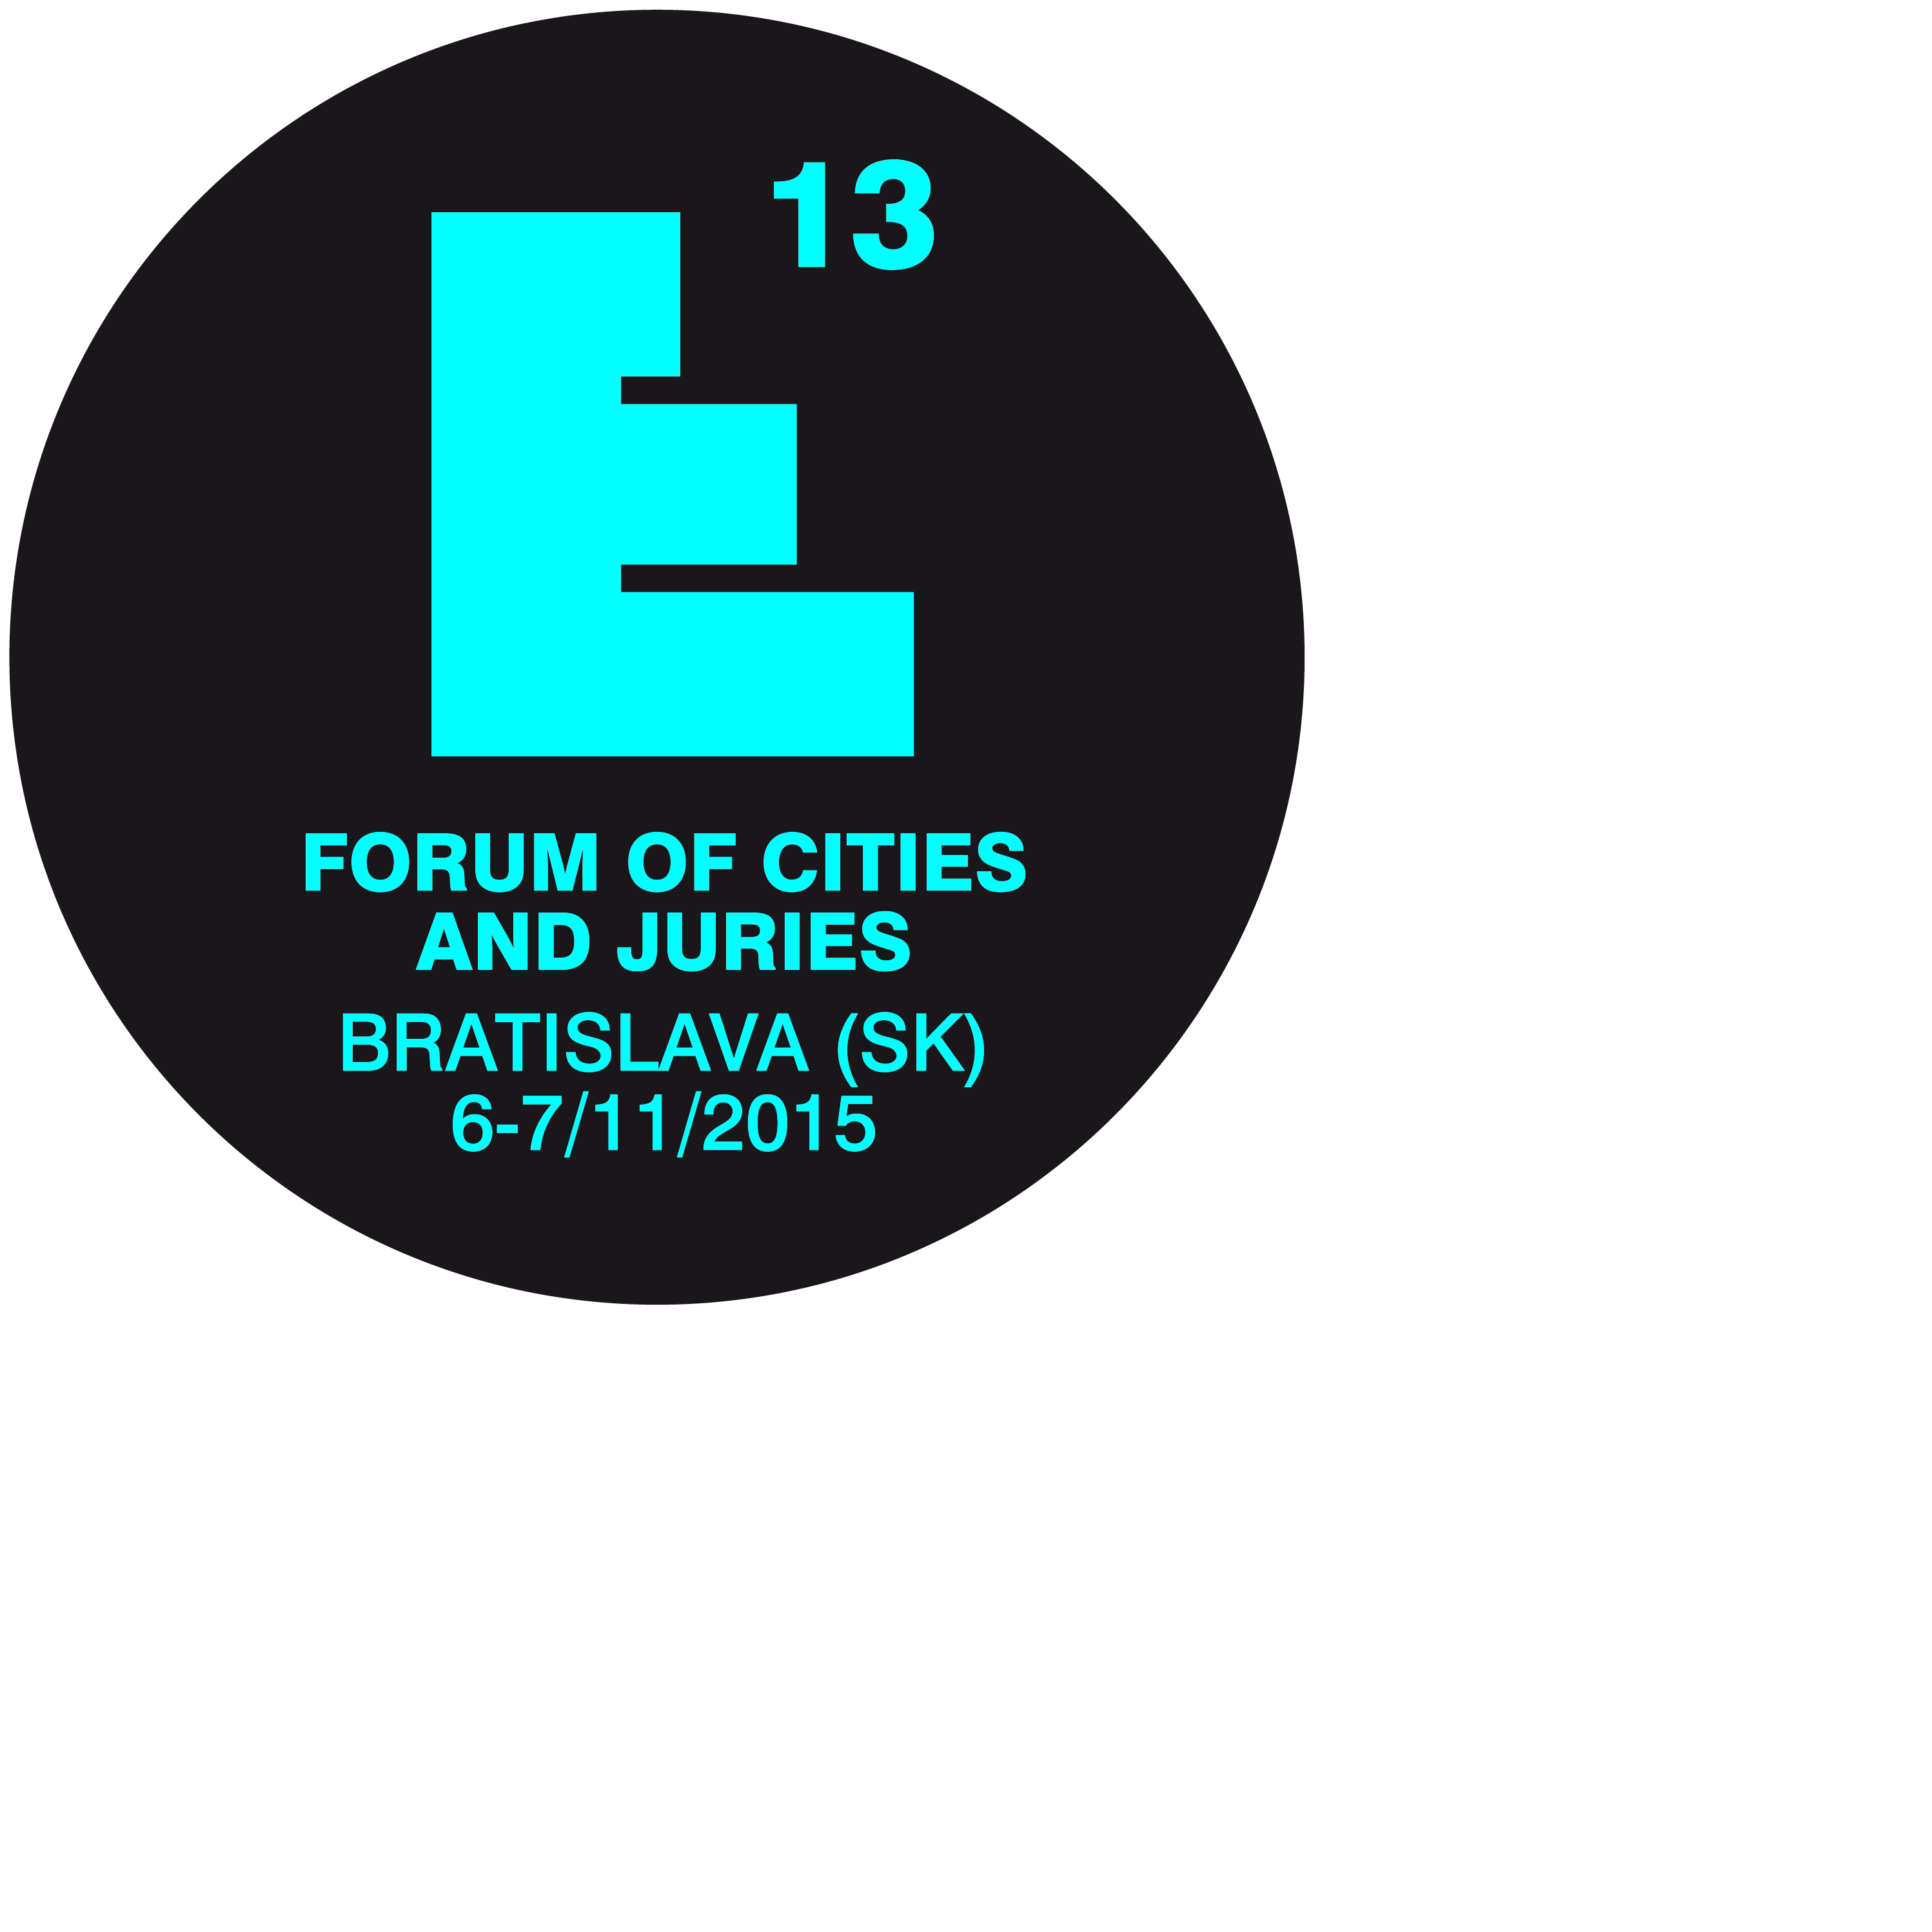 E13 Forum of Cities and Juries